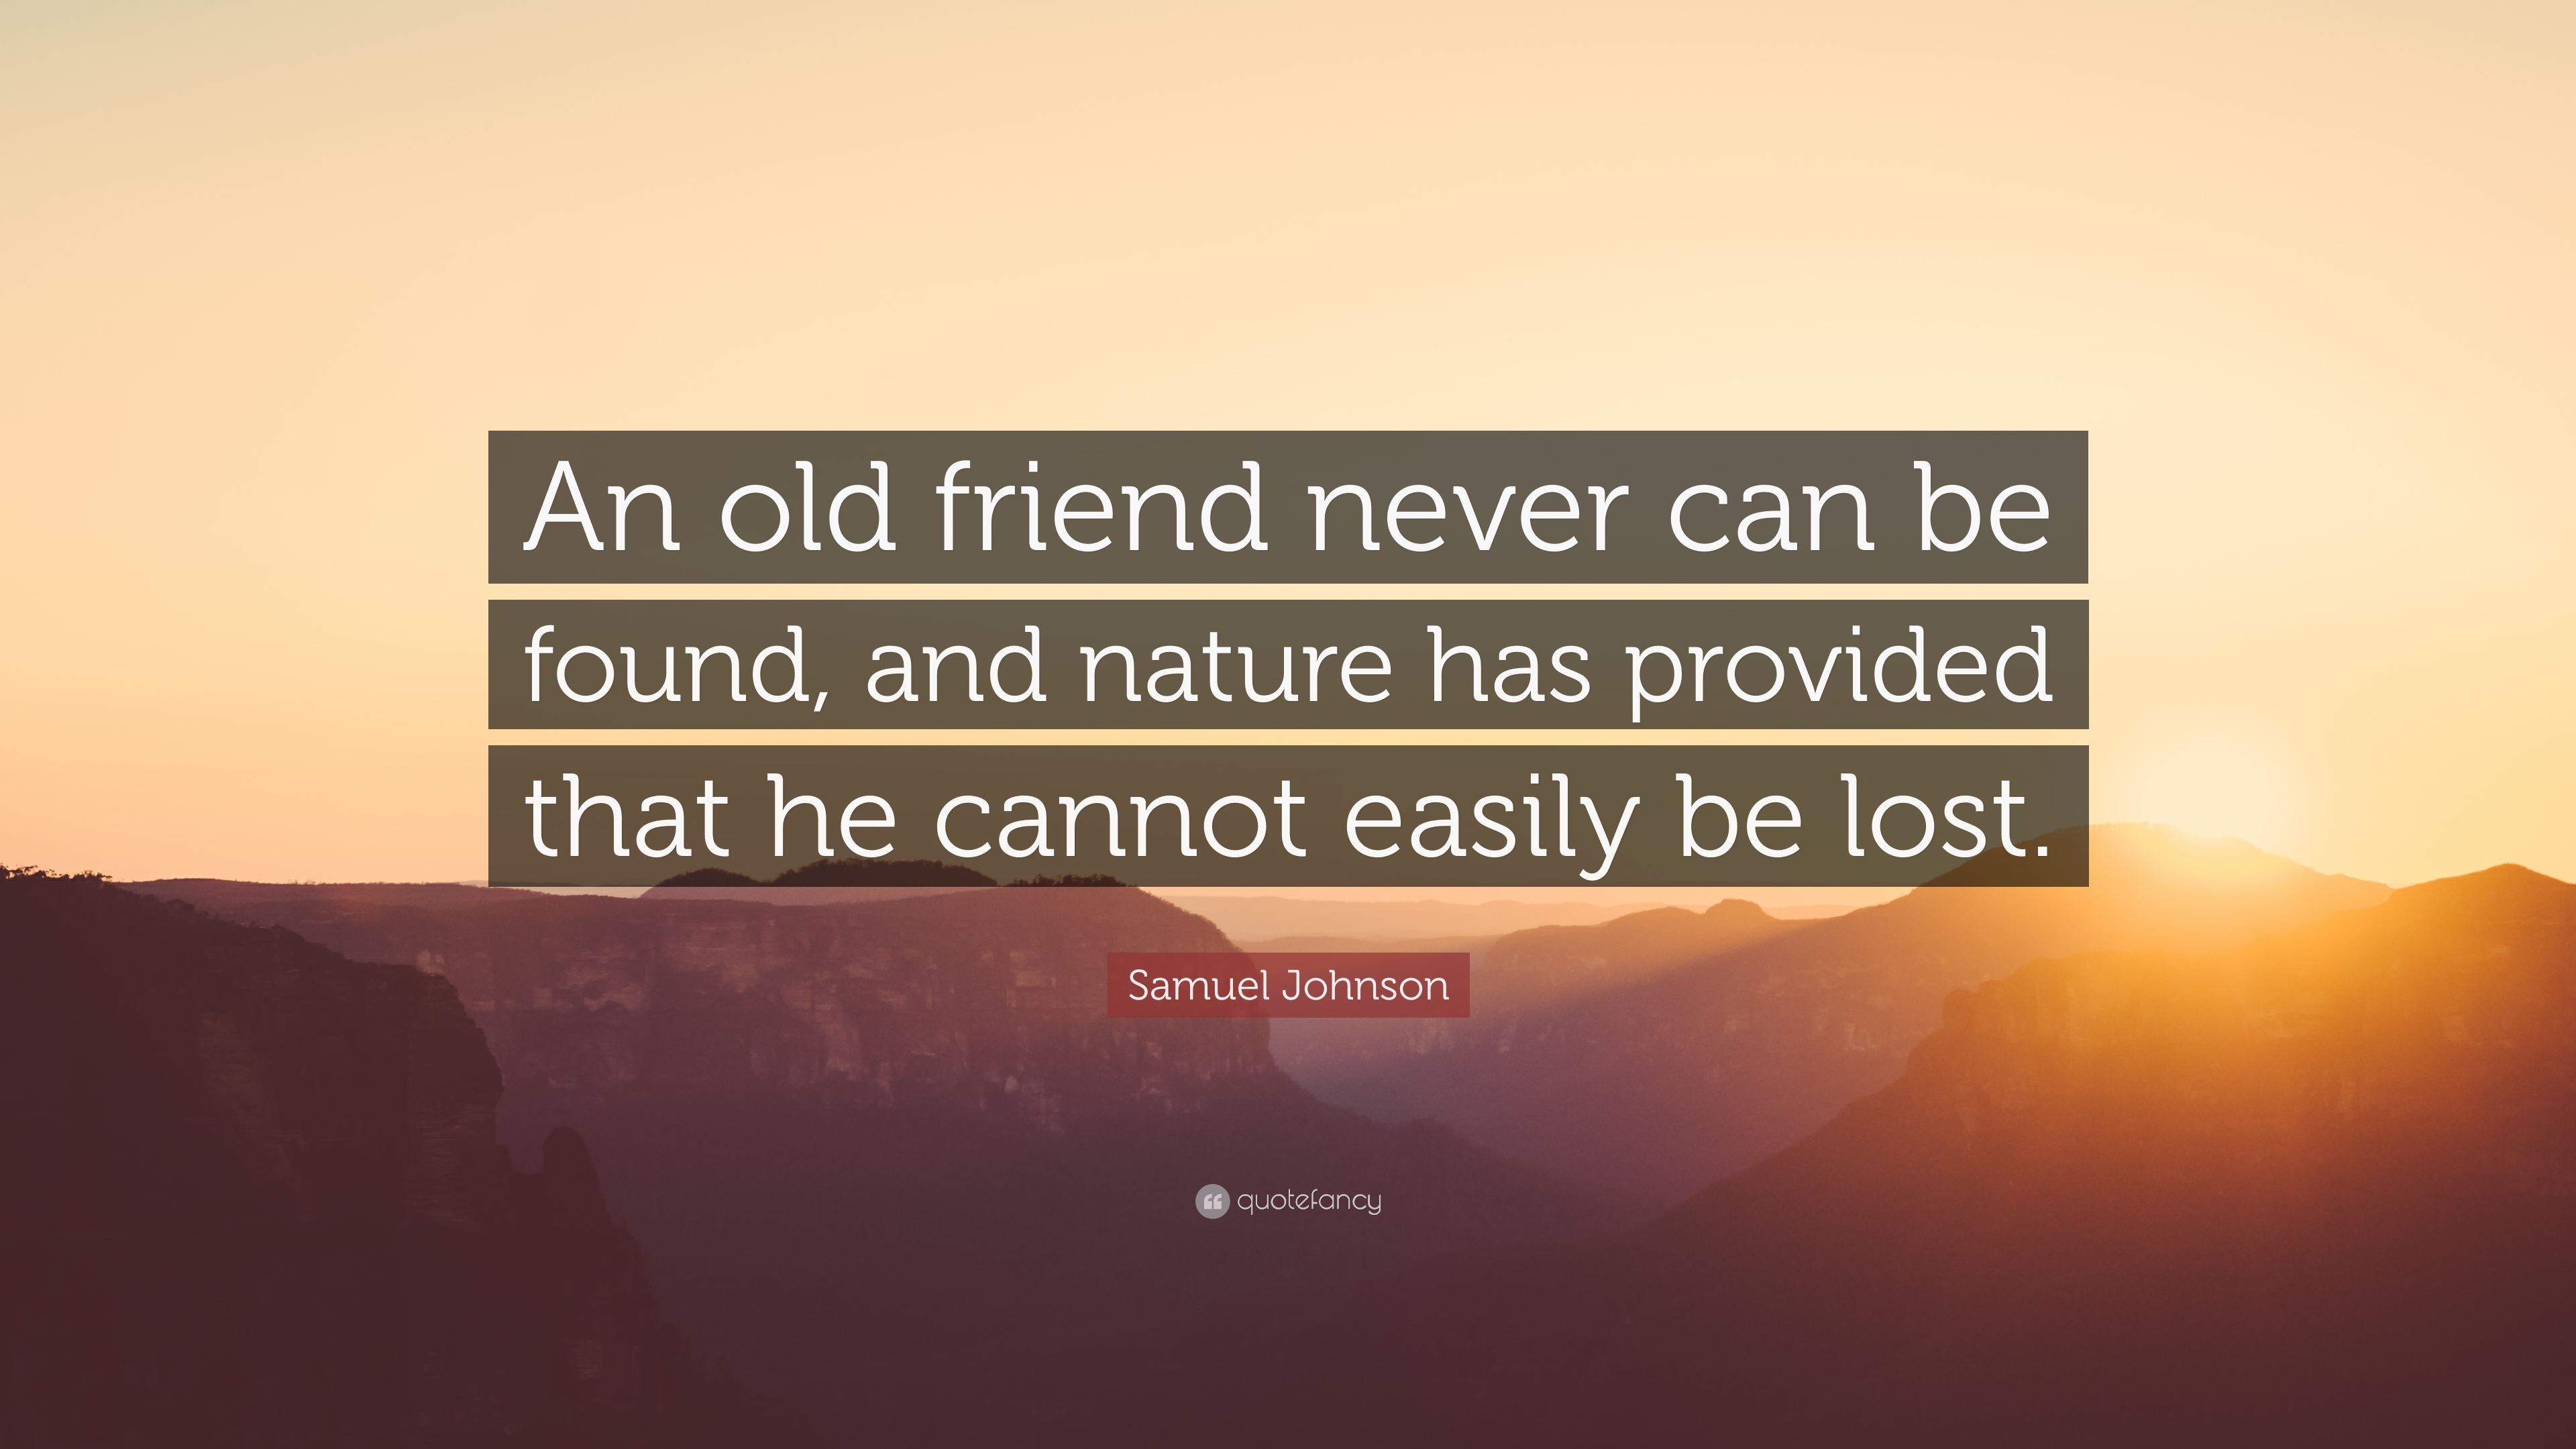 Quotes About Friendship Lost Quotes About Friendship Lost And Found Lost Quotes Image At